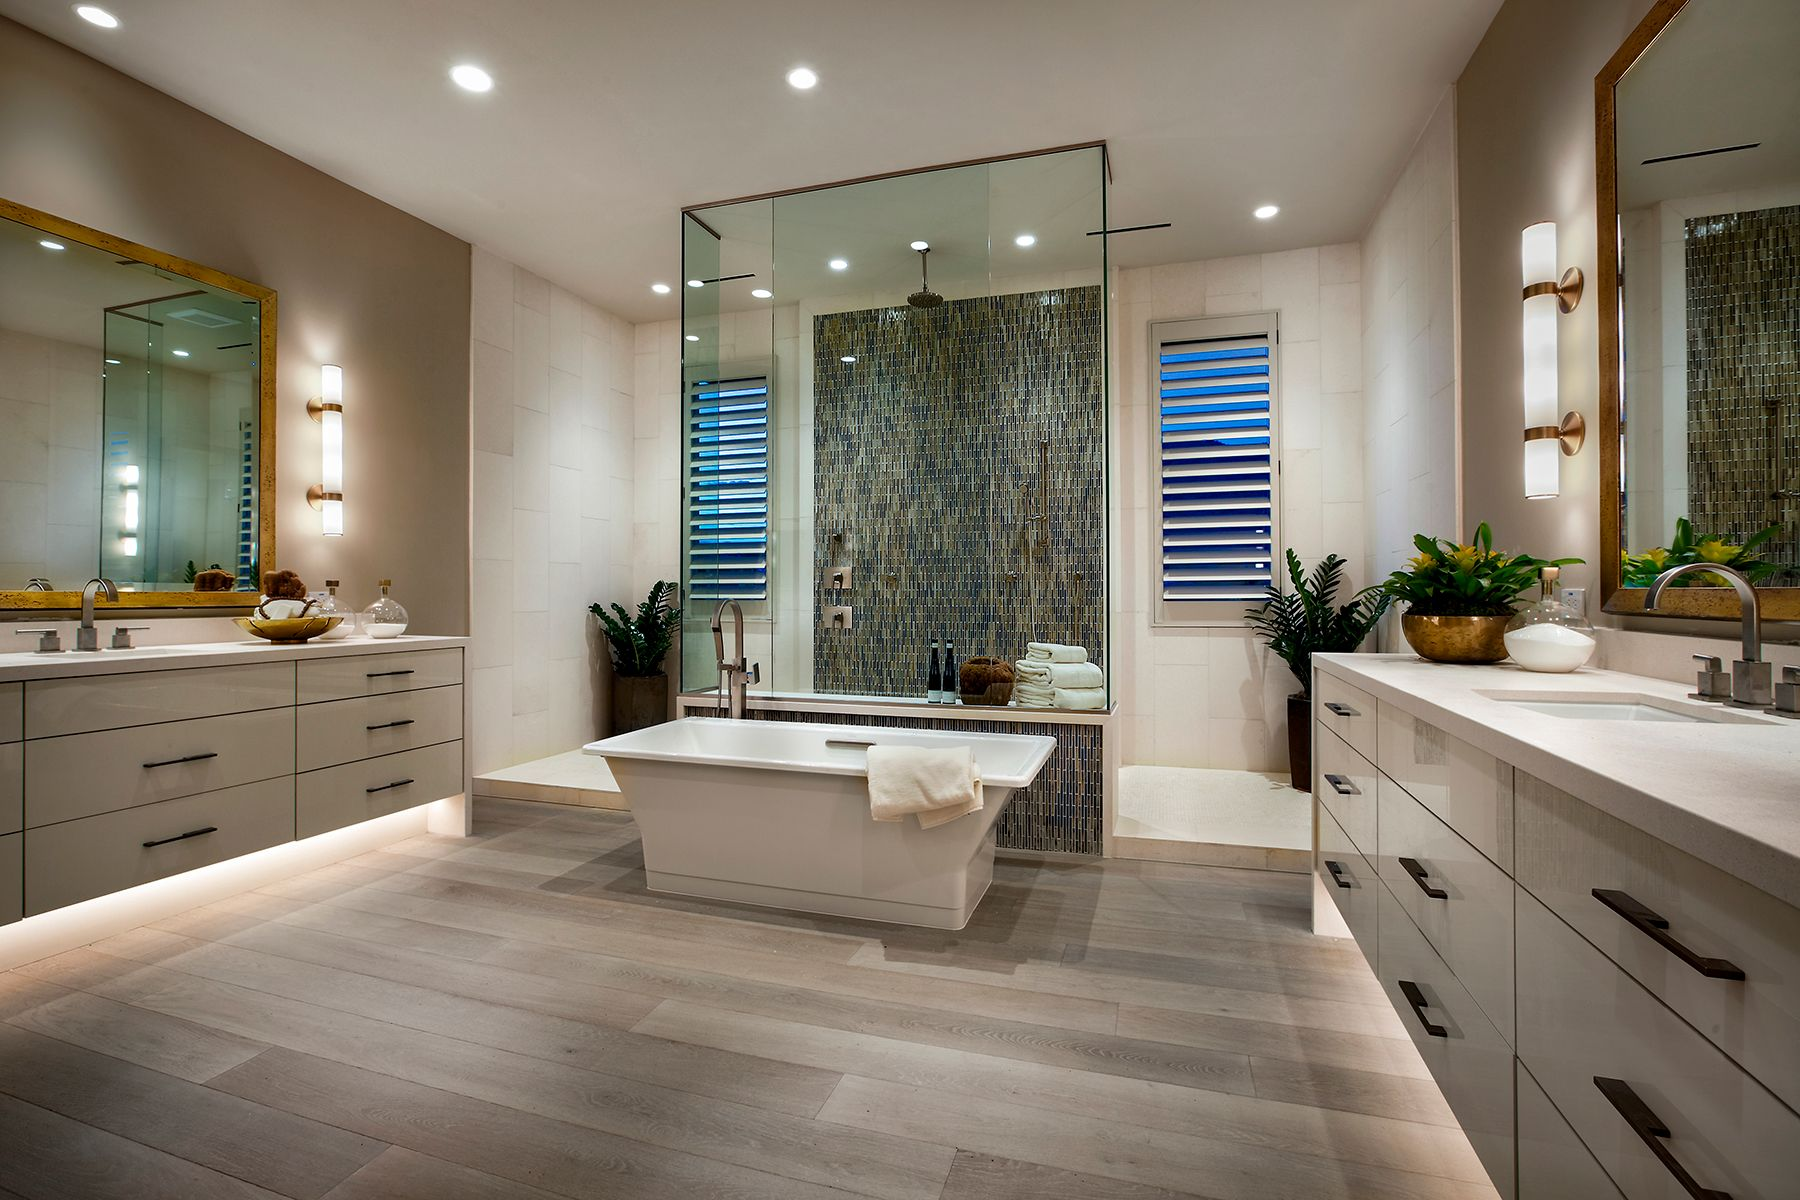 Bathroom featured in the Villa Plan 2 By The New Home Company in Phoenix-Mesa, AZ